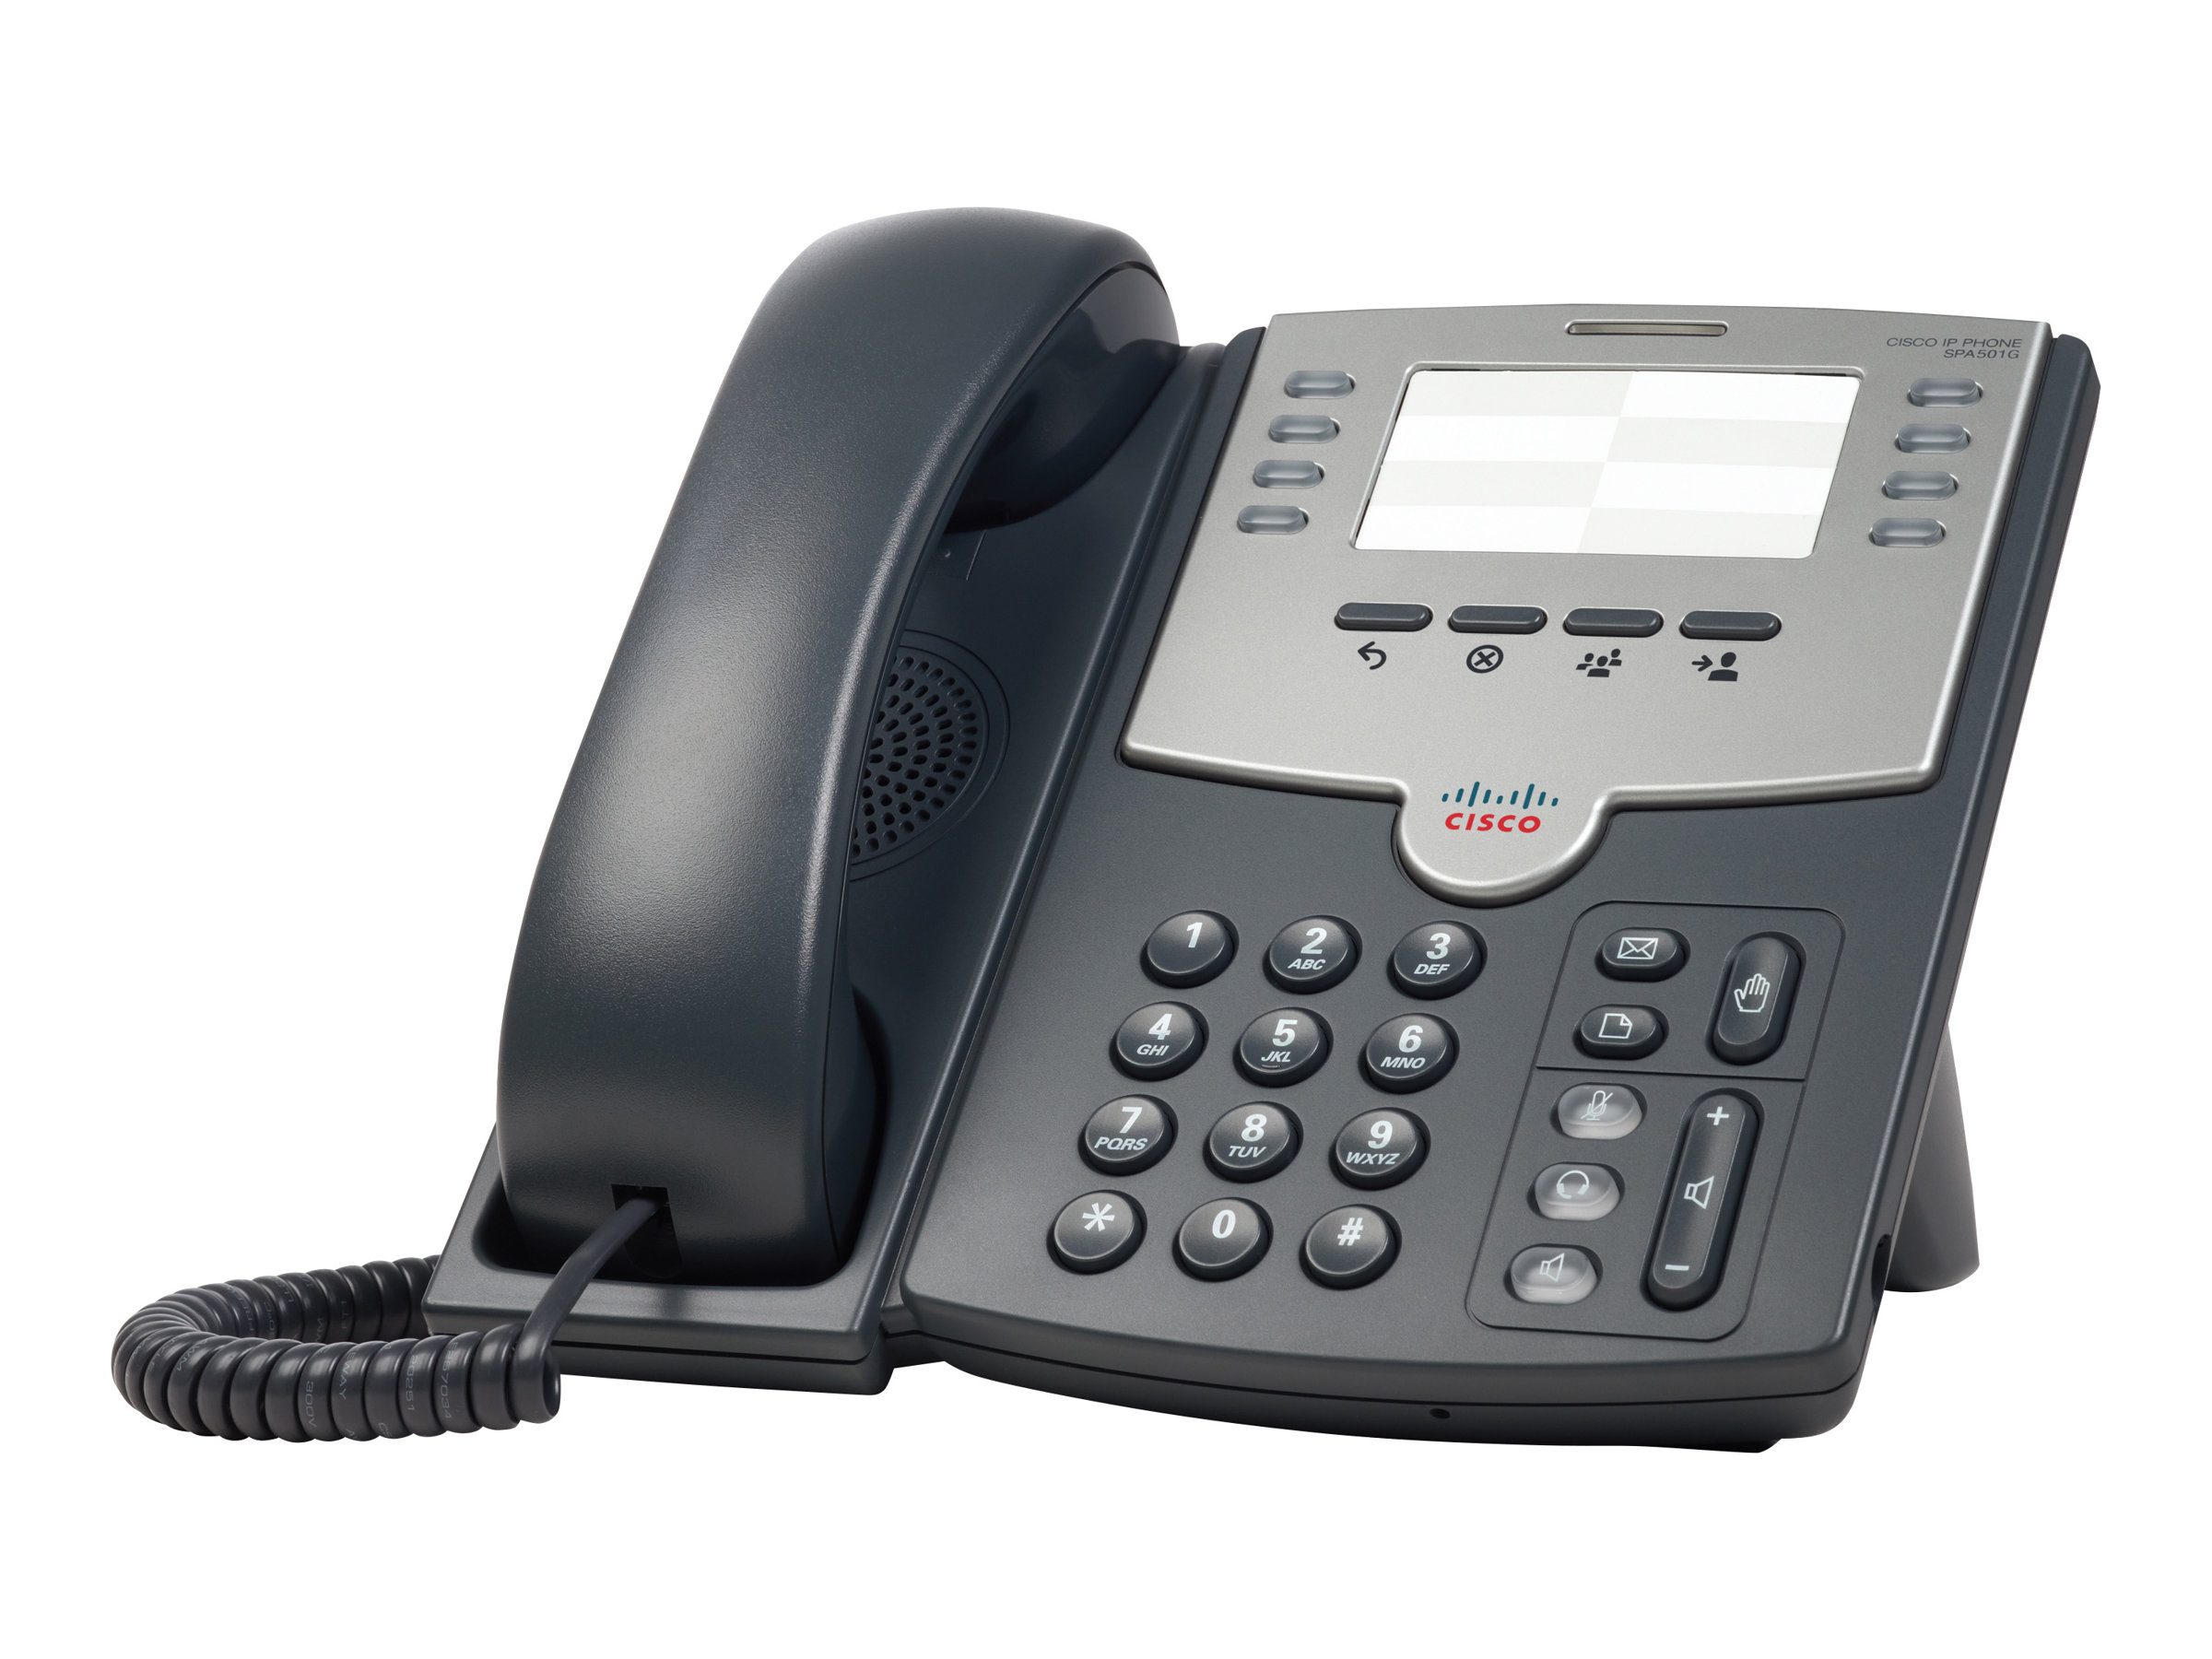 Cisco Small Business SPA 501G - VoIP-Telefon - SIP, SIP v2, SPCP - mehrere Leitungen - Silber, Dunkelgrau - für Small Business P